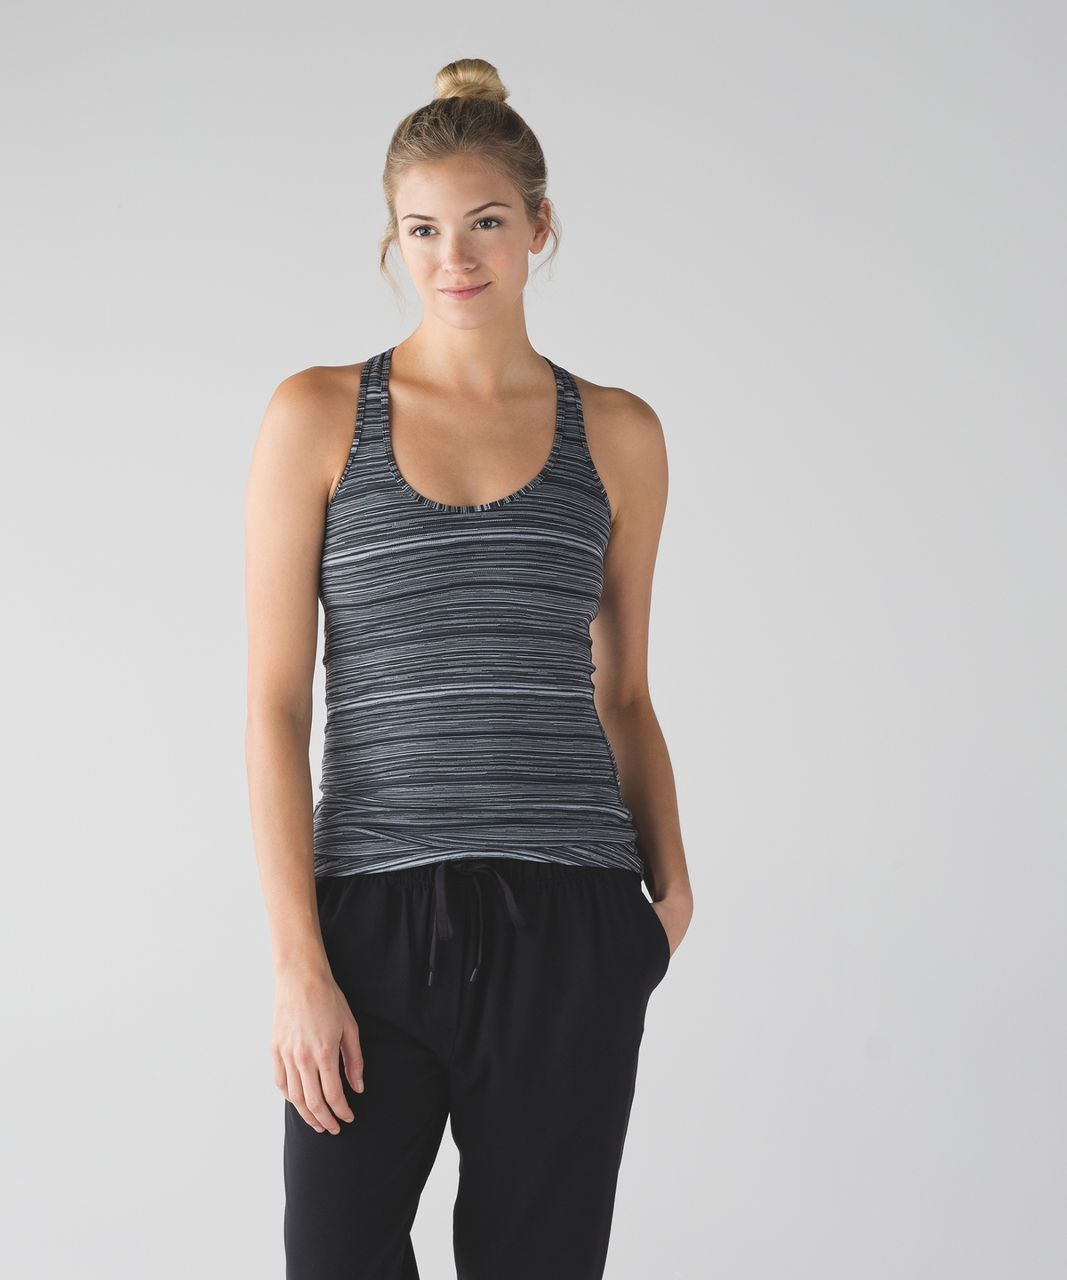 Lululemon Cool Racerback - Cyber Black Deep Coal